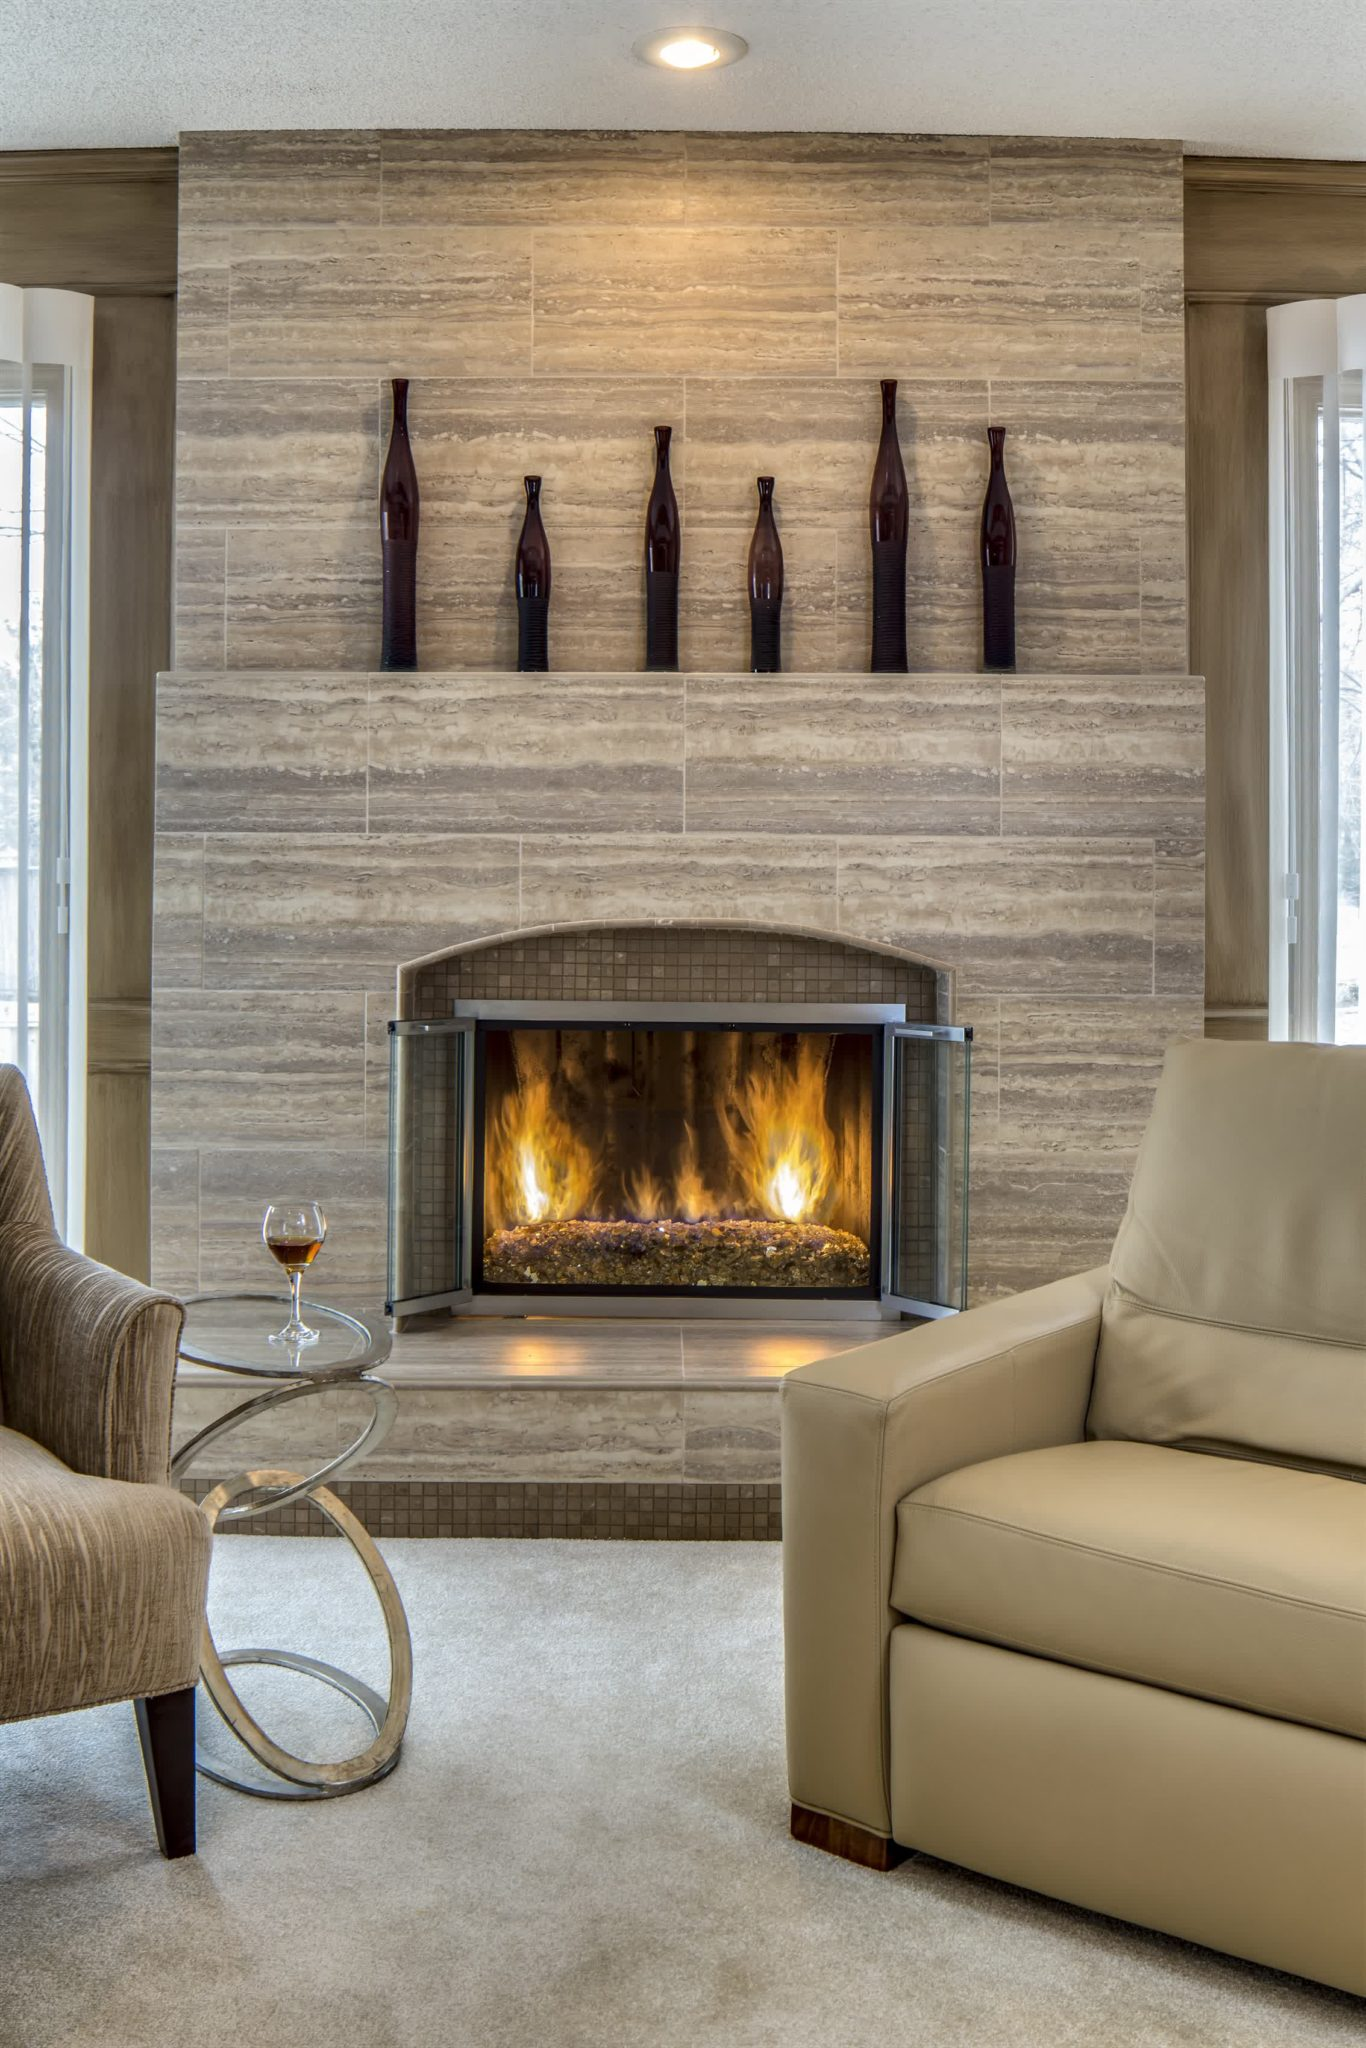 after_fireplace_by_design_connection_inc_kansas_city_interior_design_tif